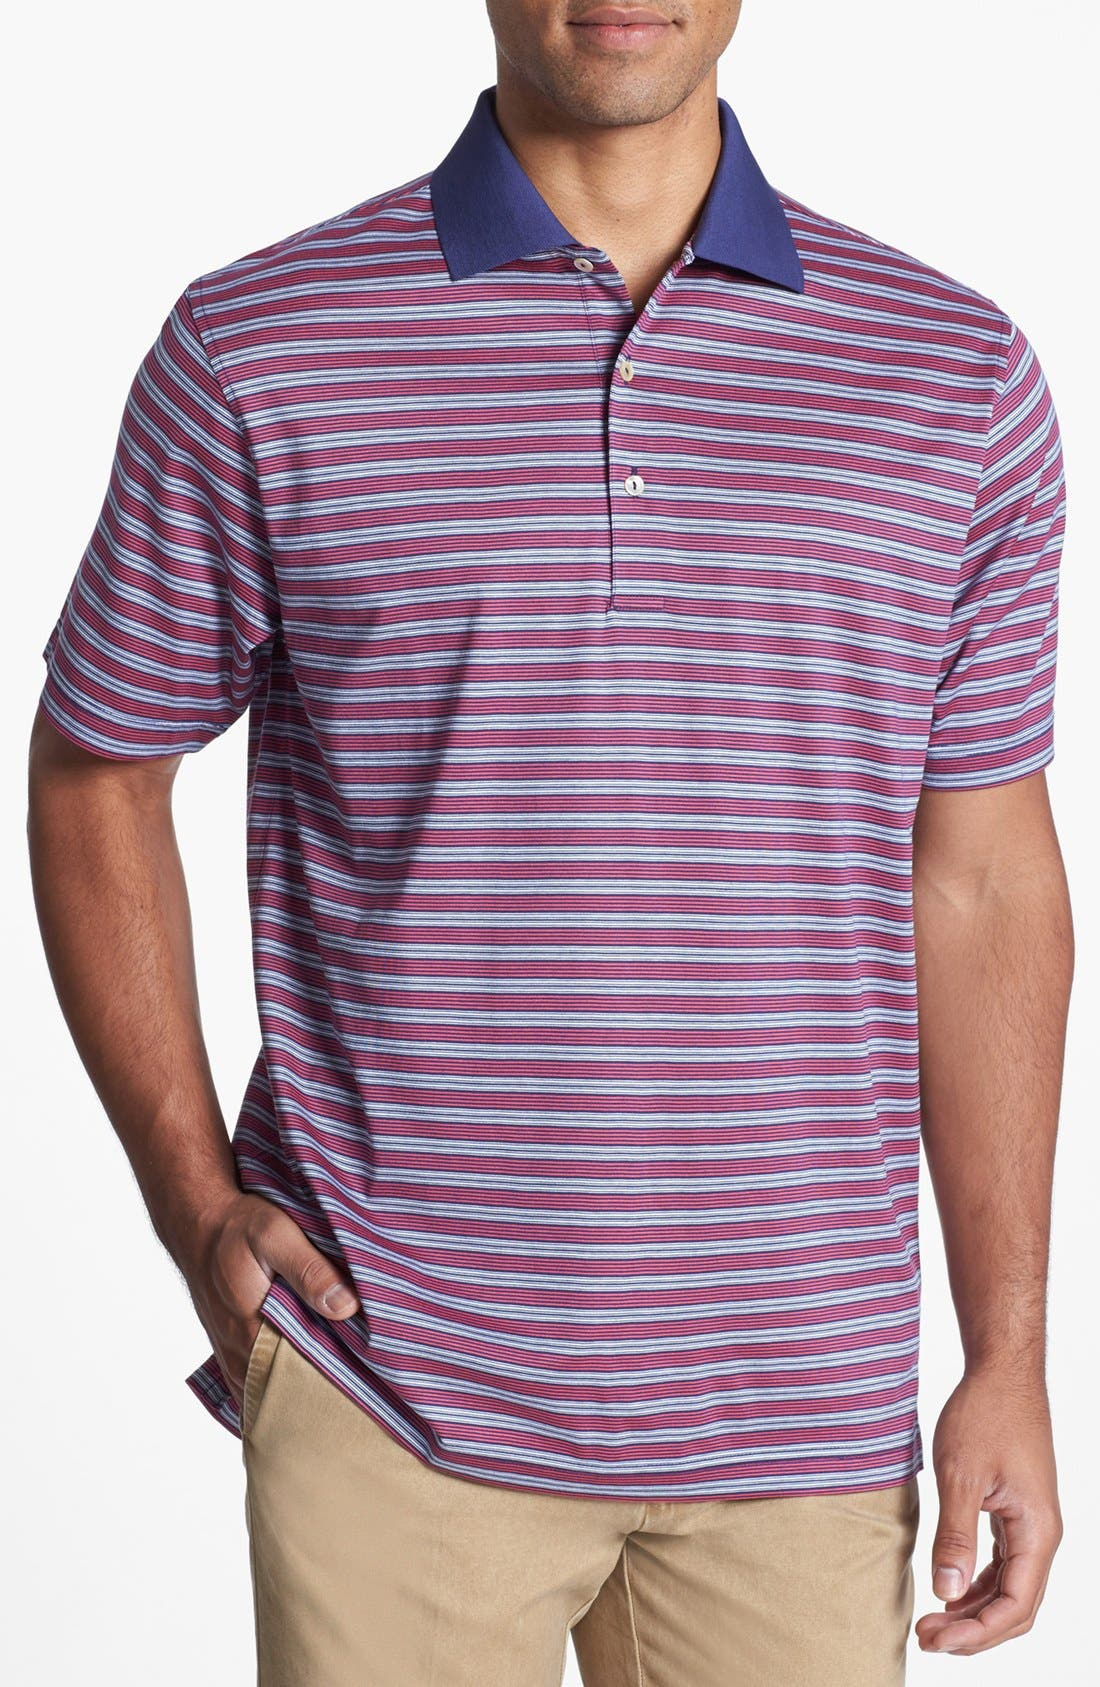 Alternate Image 1 Selected - Peter Millar 'Laddie Stripe' Polo